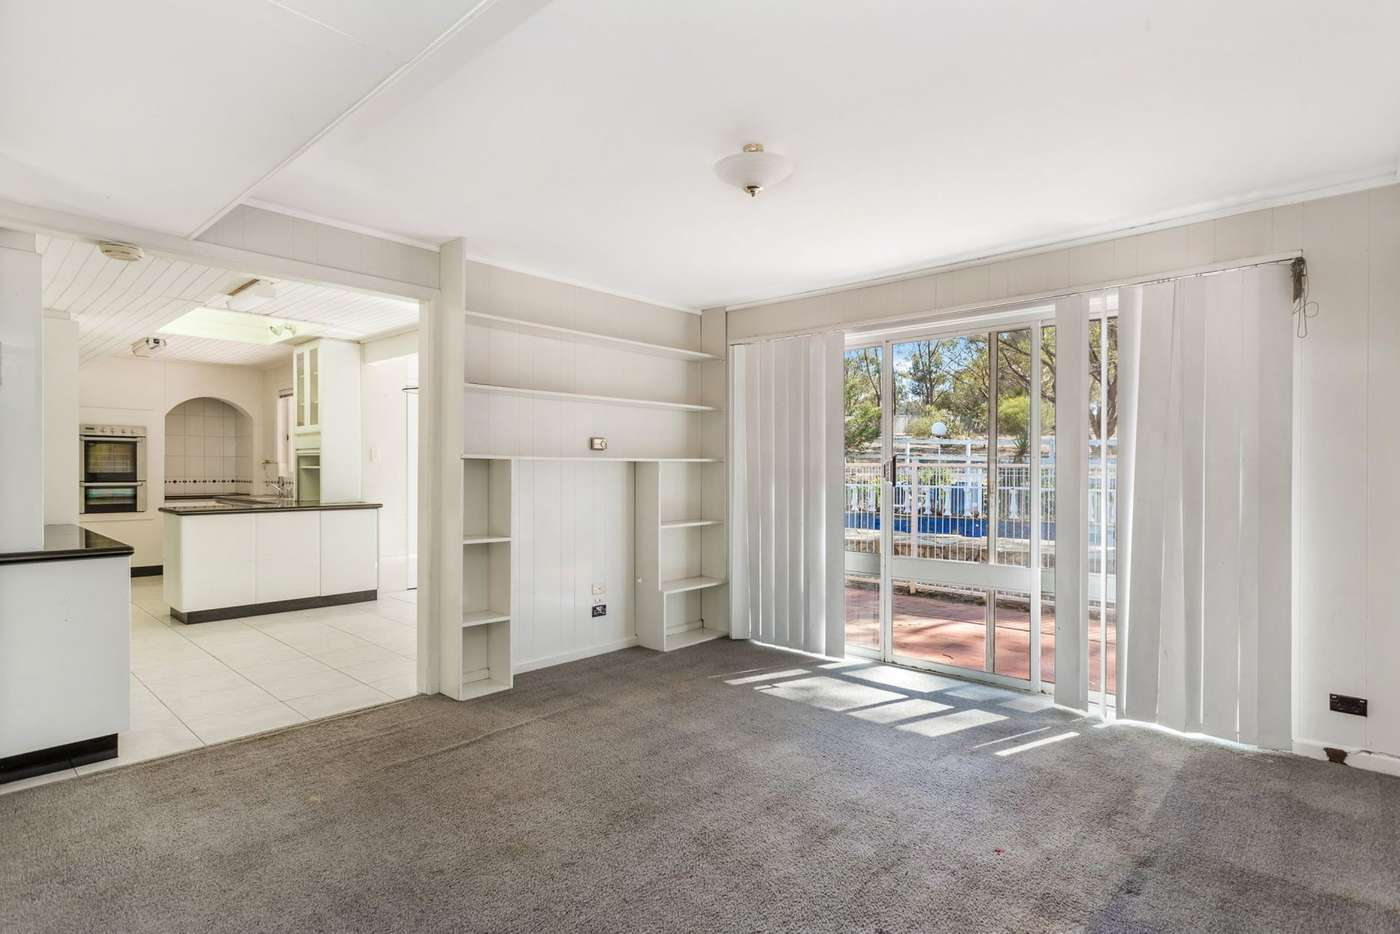 Sixth view of Homely house listing, 230-236 Marong Road, Maiden Gully VIC 3551